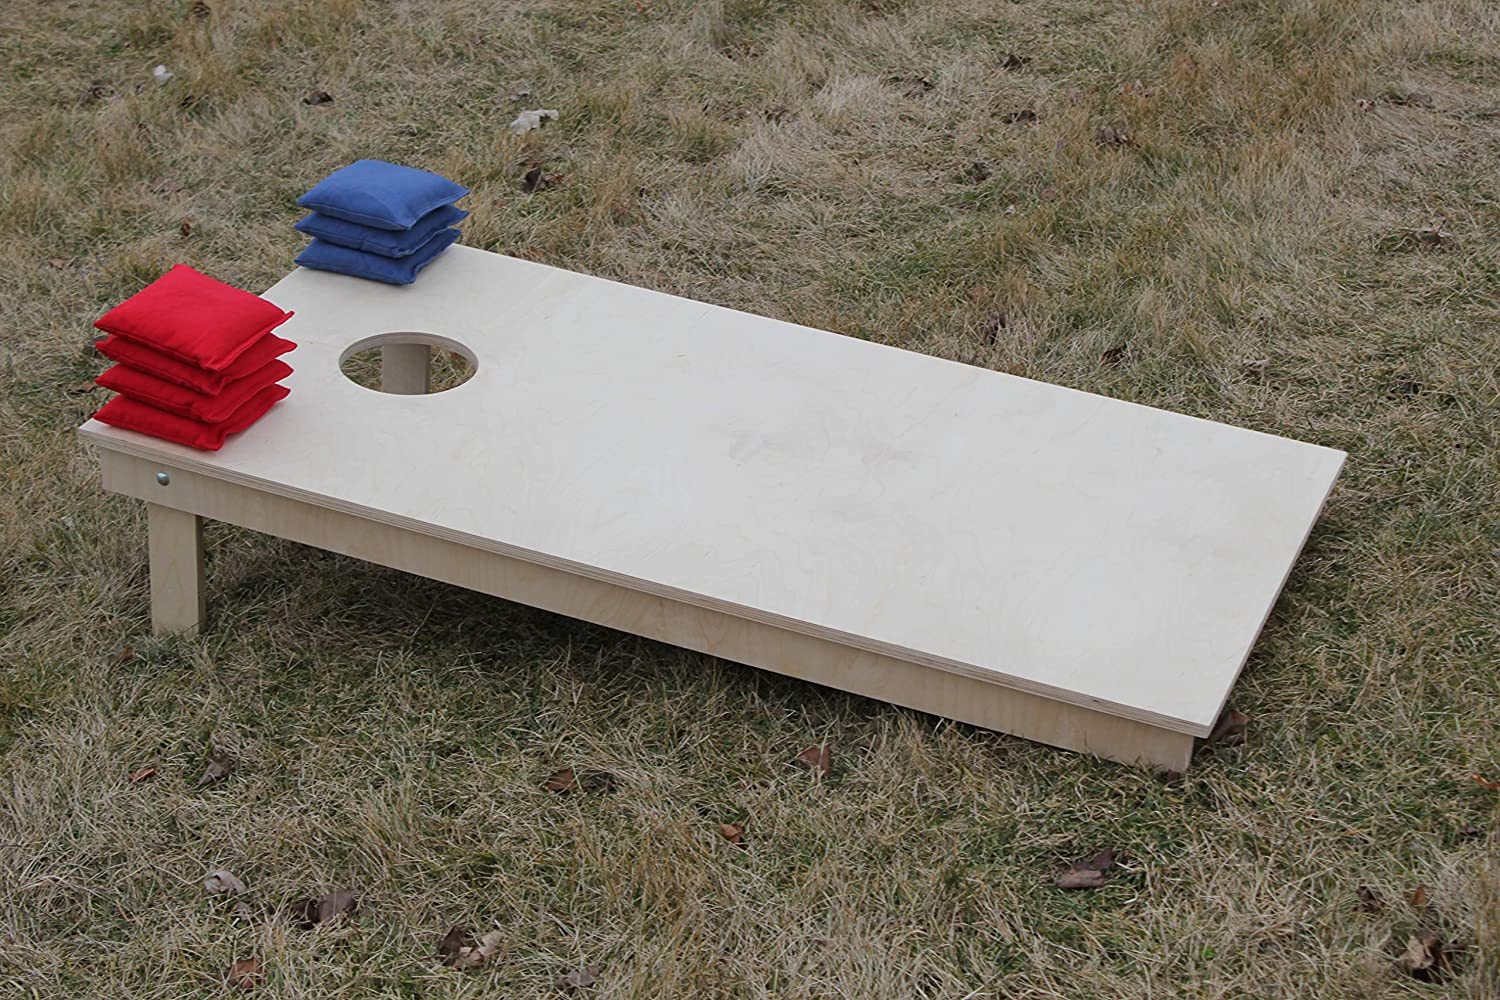 BackYardGamesUSA Unfinished Cornhole Boards BEANBAG TOSS Game Set w Pick Your Colors Bags